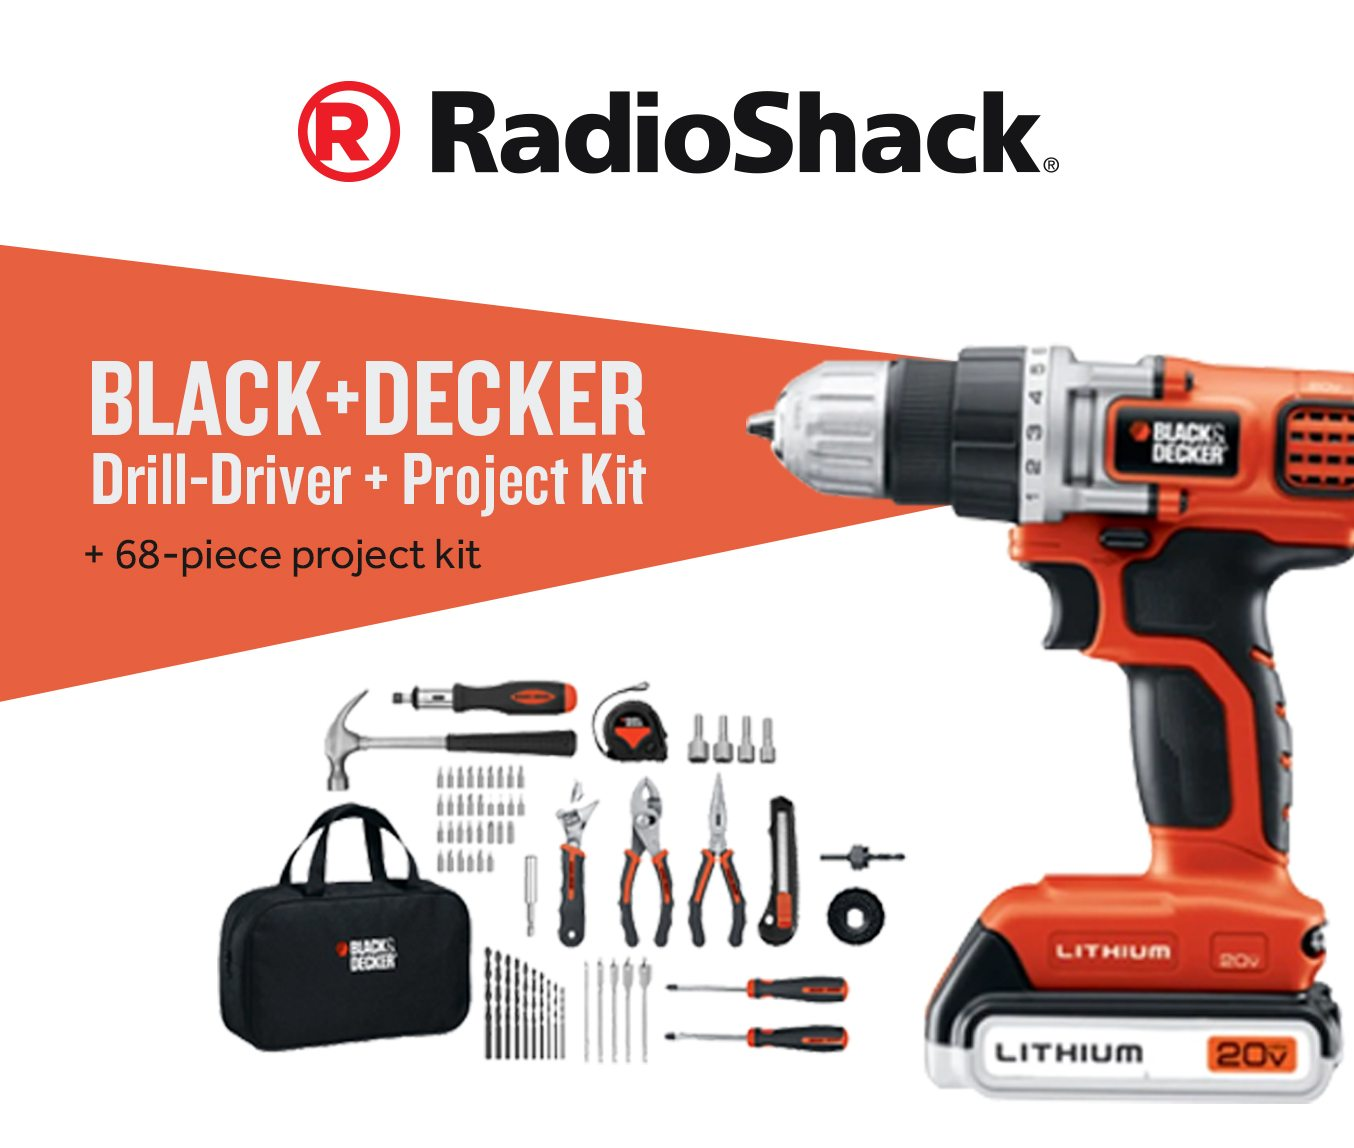 BLACK+DECKER 20V MAX Lithium Drill-Driver and 68-Piece Project Kit